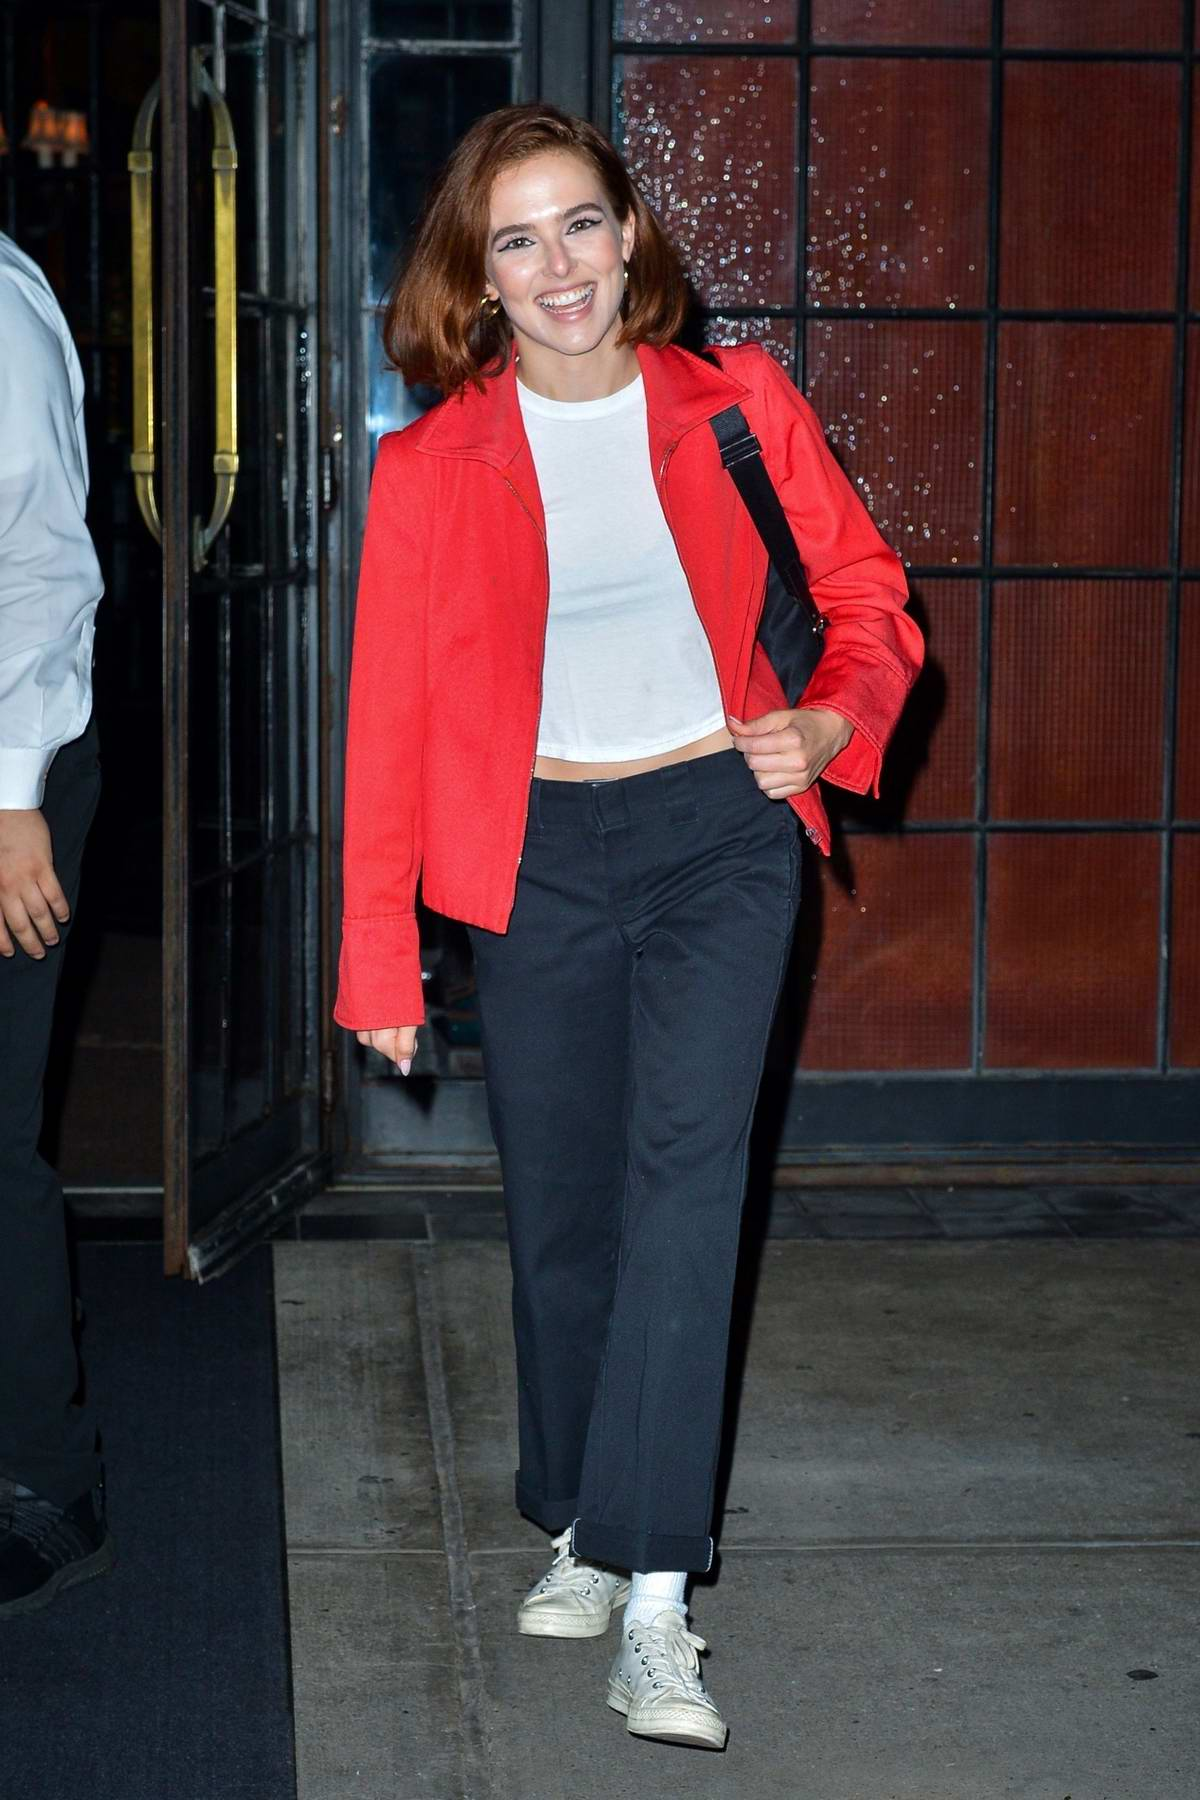 Zoey Deutch is all smiles as she exits The Bowery Hotel wearing red jacket in New York City